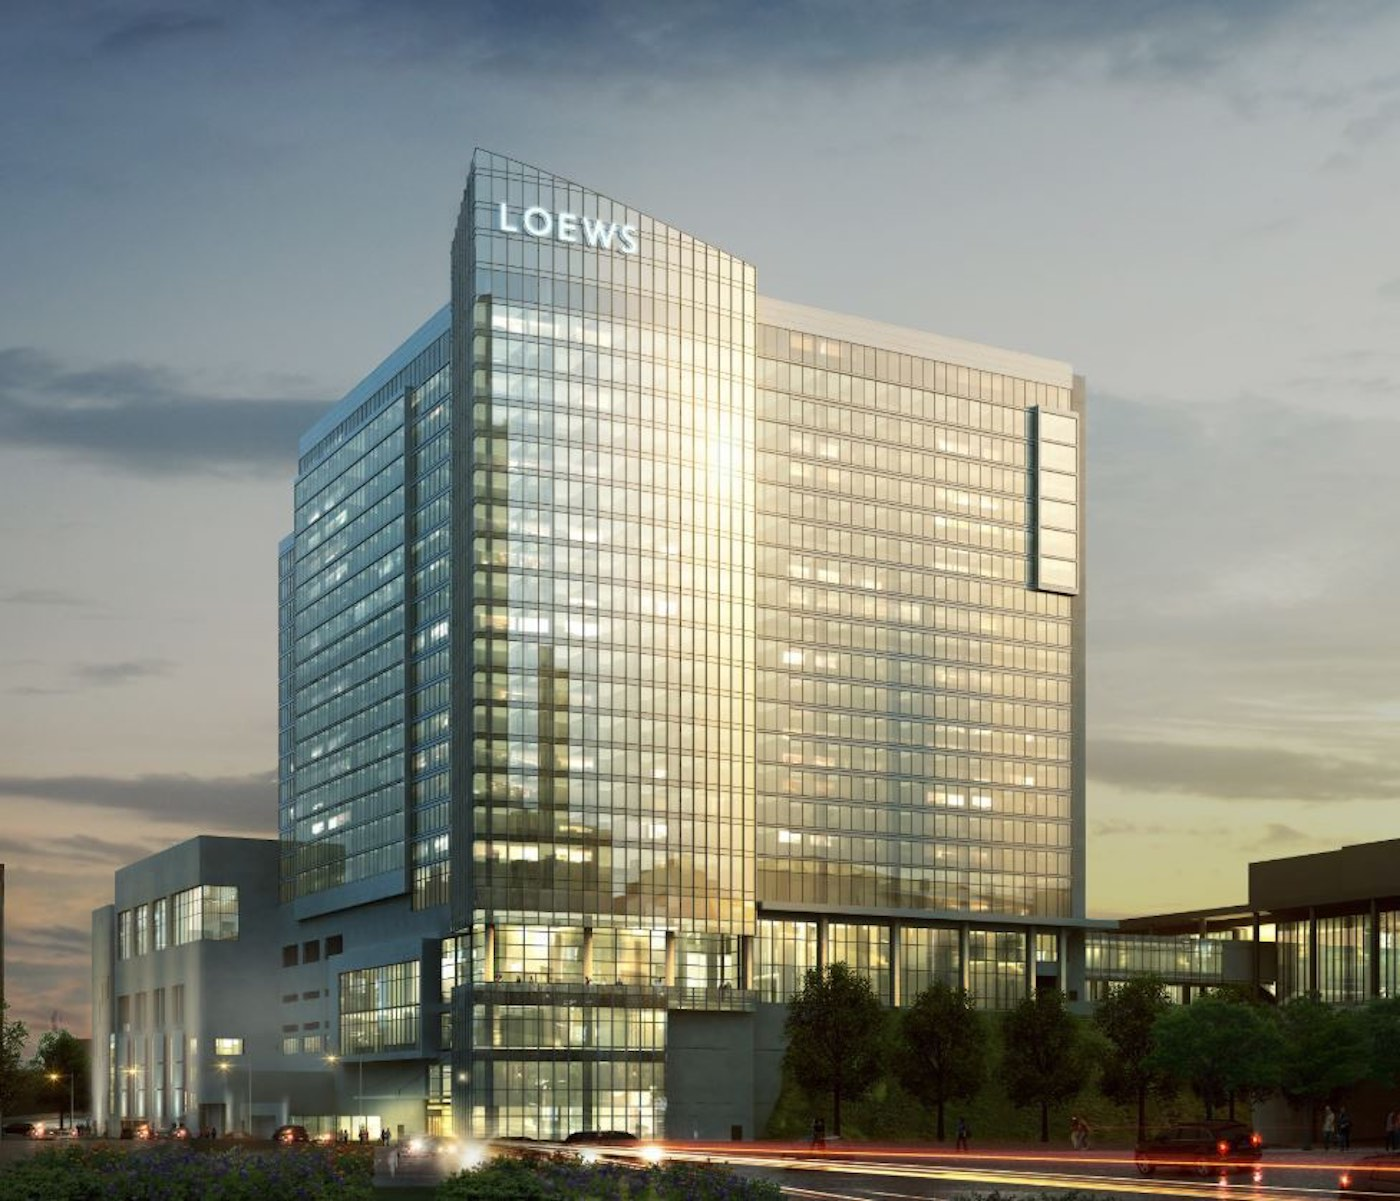 Loews Hotels & Resorts will be opening their new property in Kansas City in Spring 2020